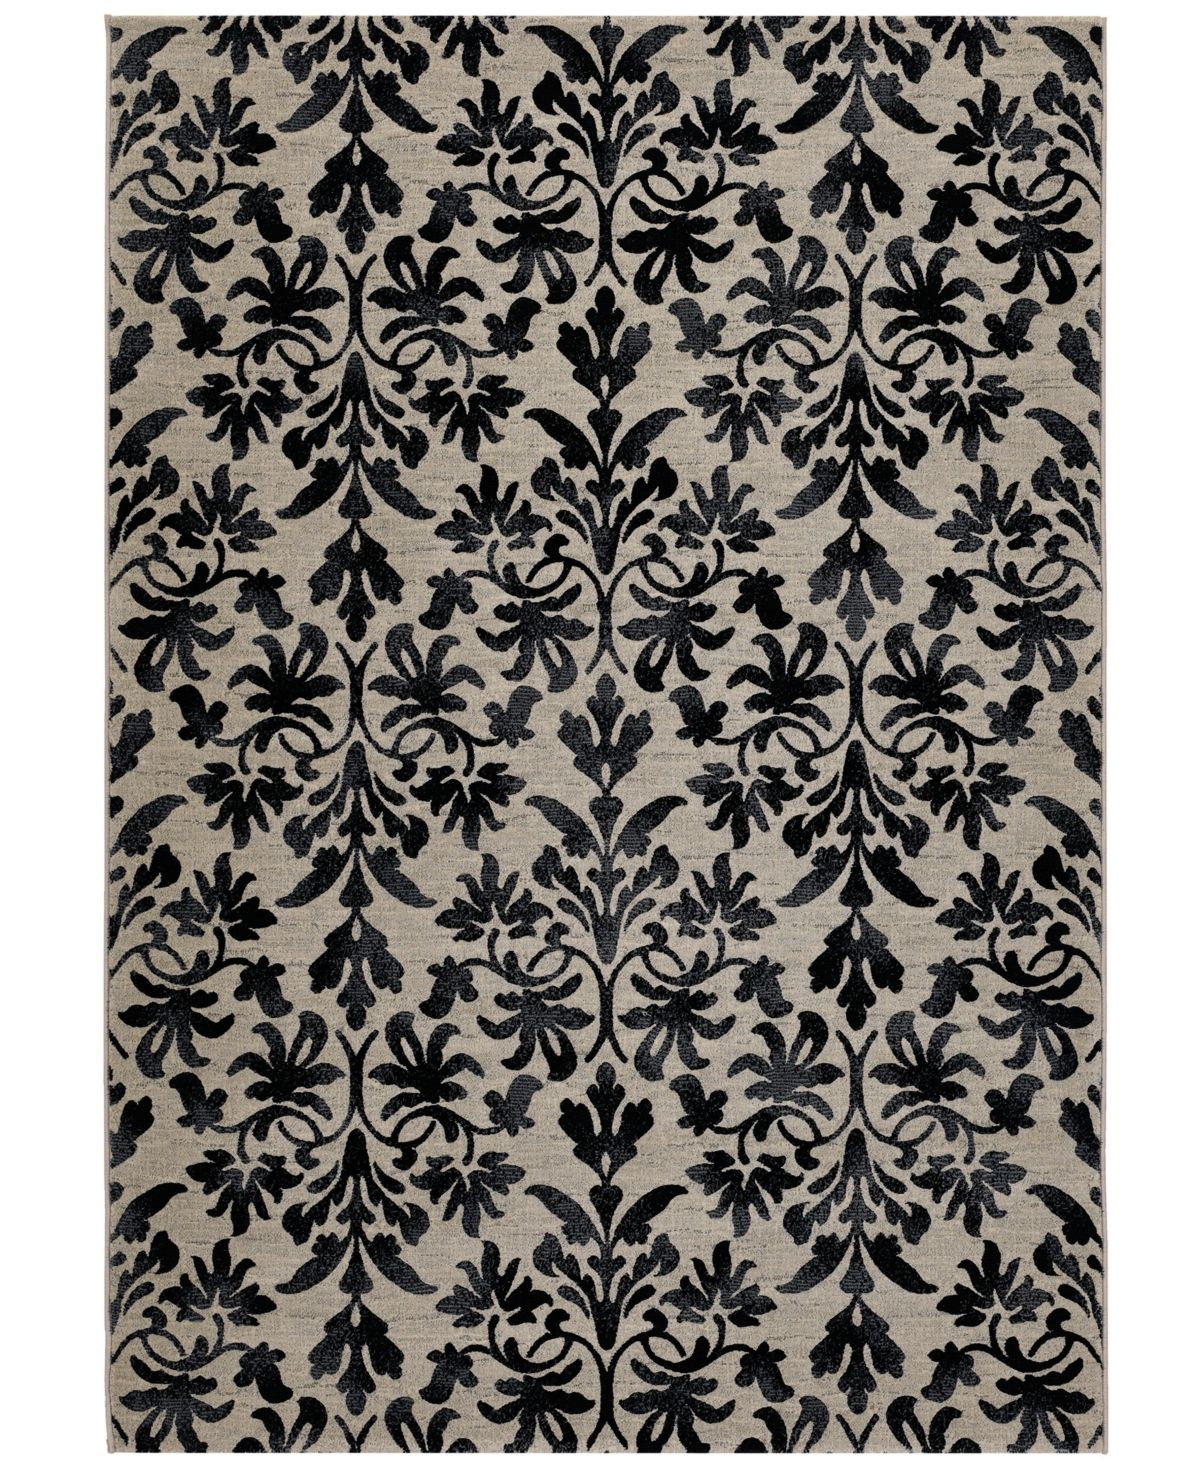 Couristan Taylor Retro Damask Grey Black 7 10 X 11 2 Area Rug Reviews Rugs Macy S Area Rugs Damask Patterned Carpet